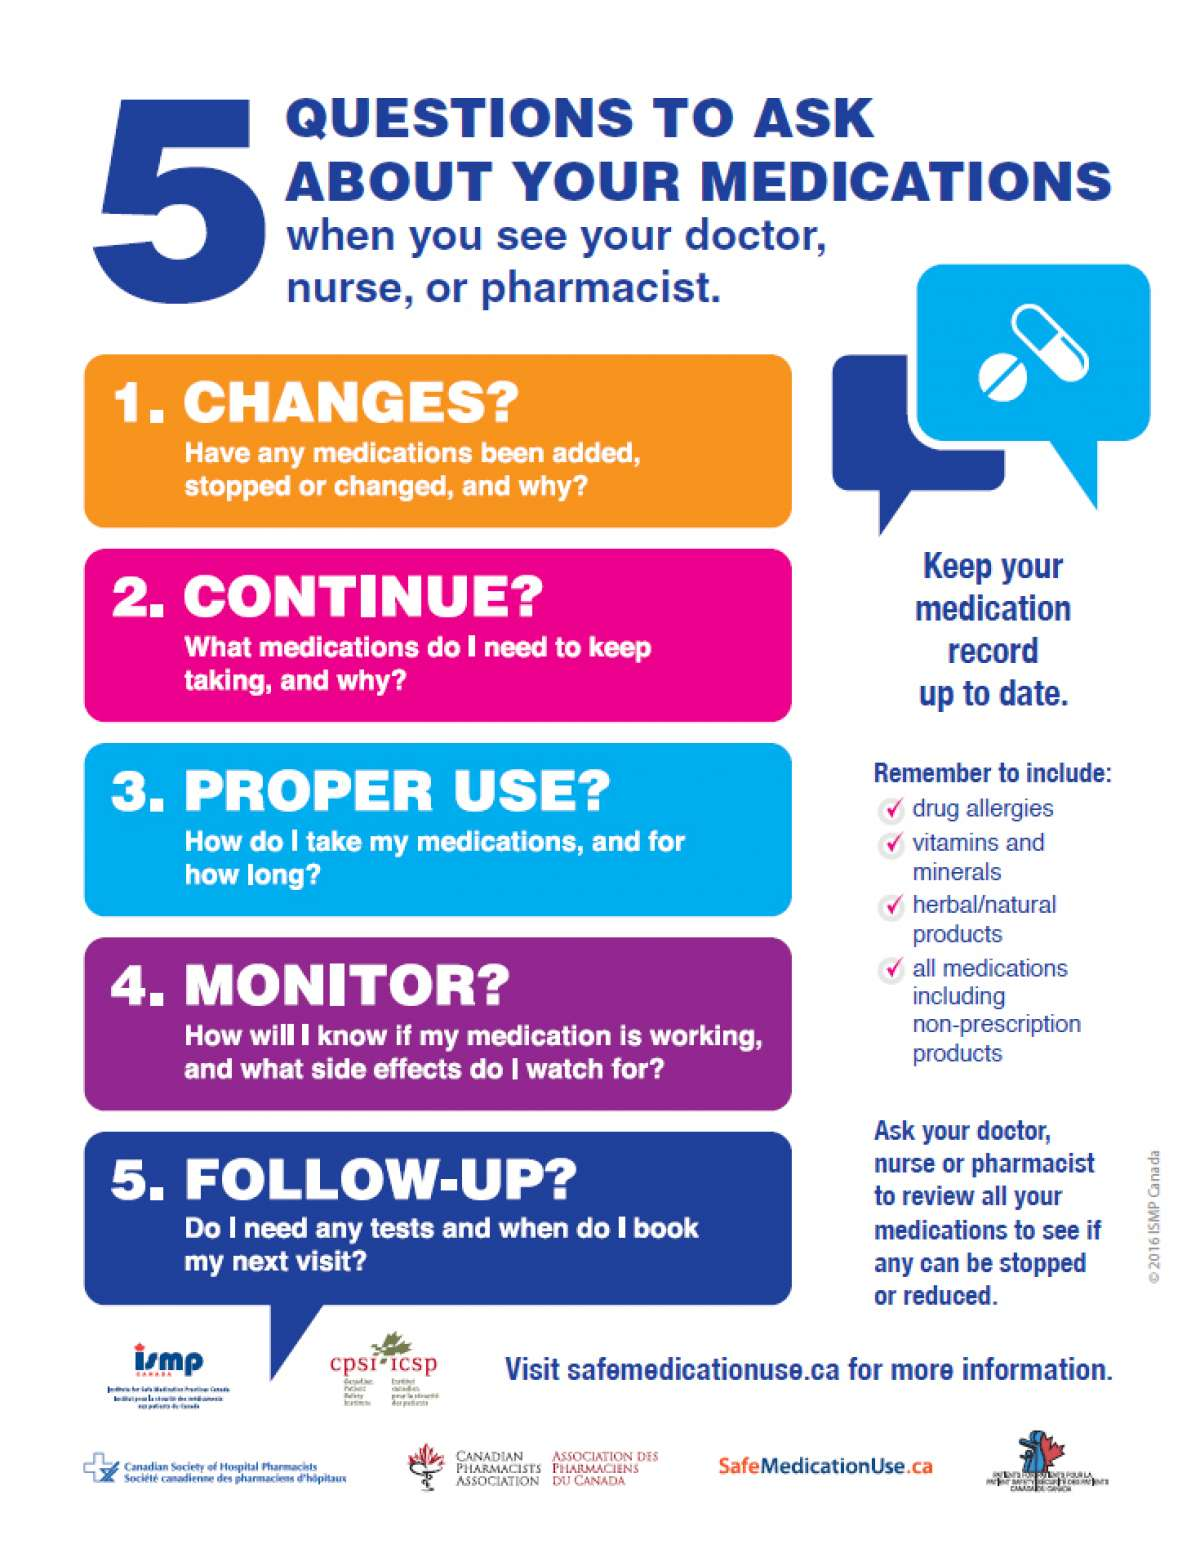 Grh Promotes Five Key Questions For Medication Safety